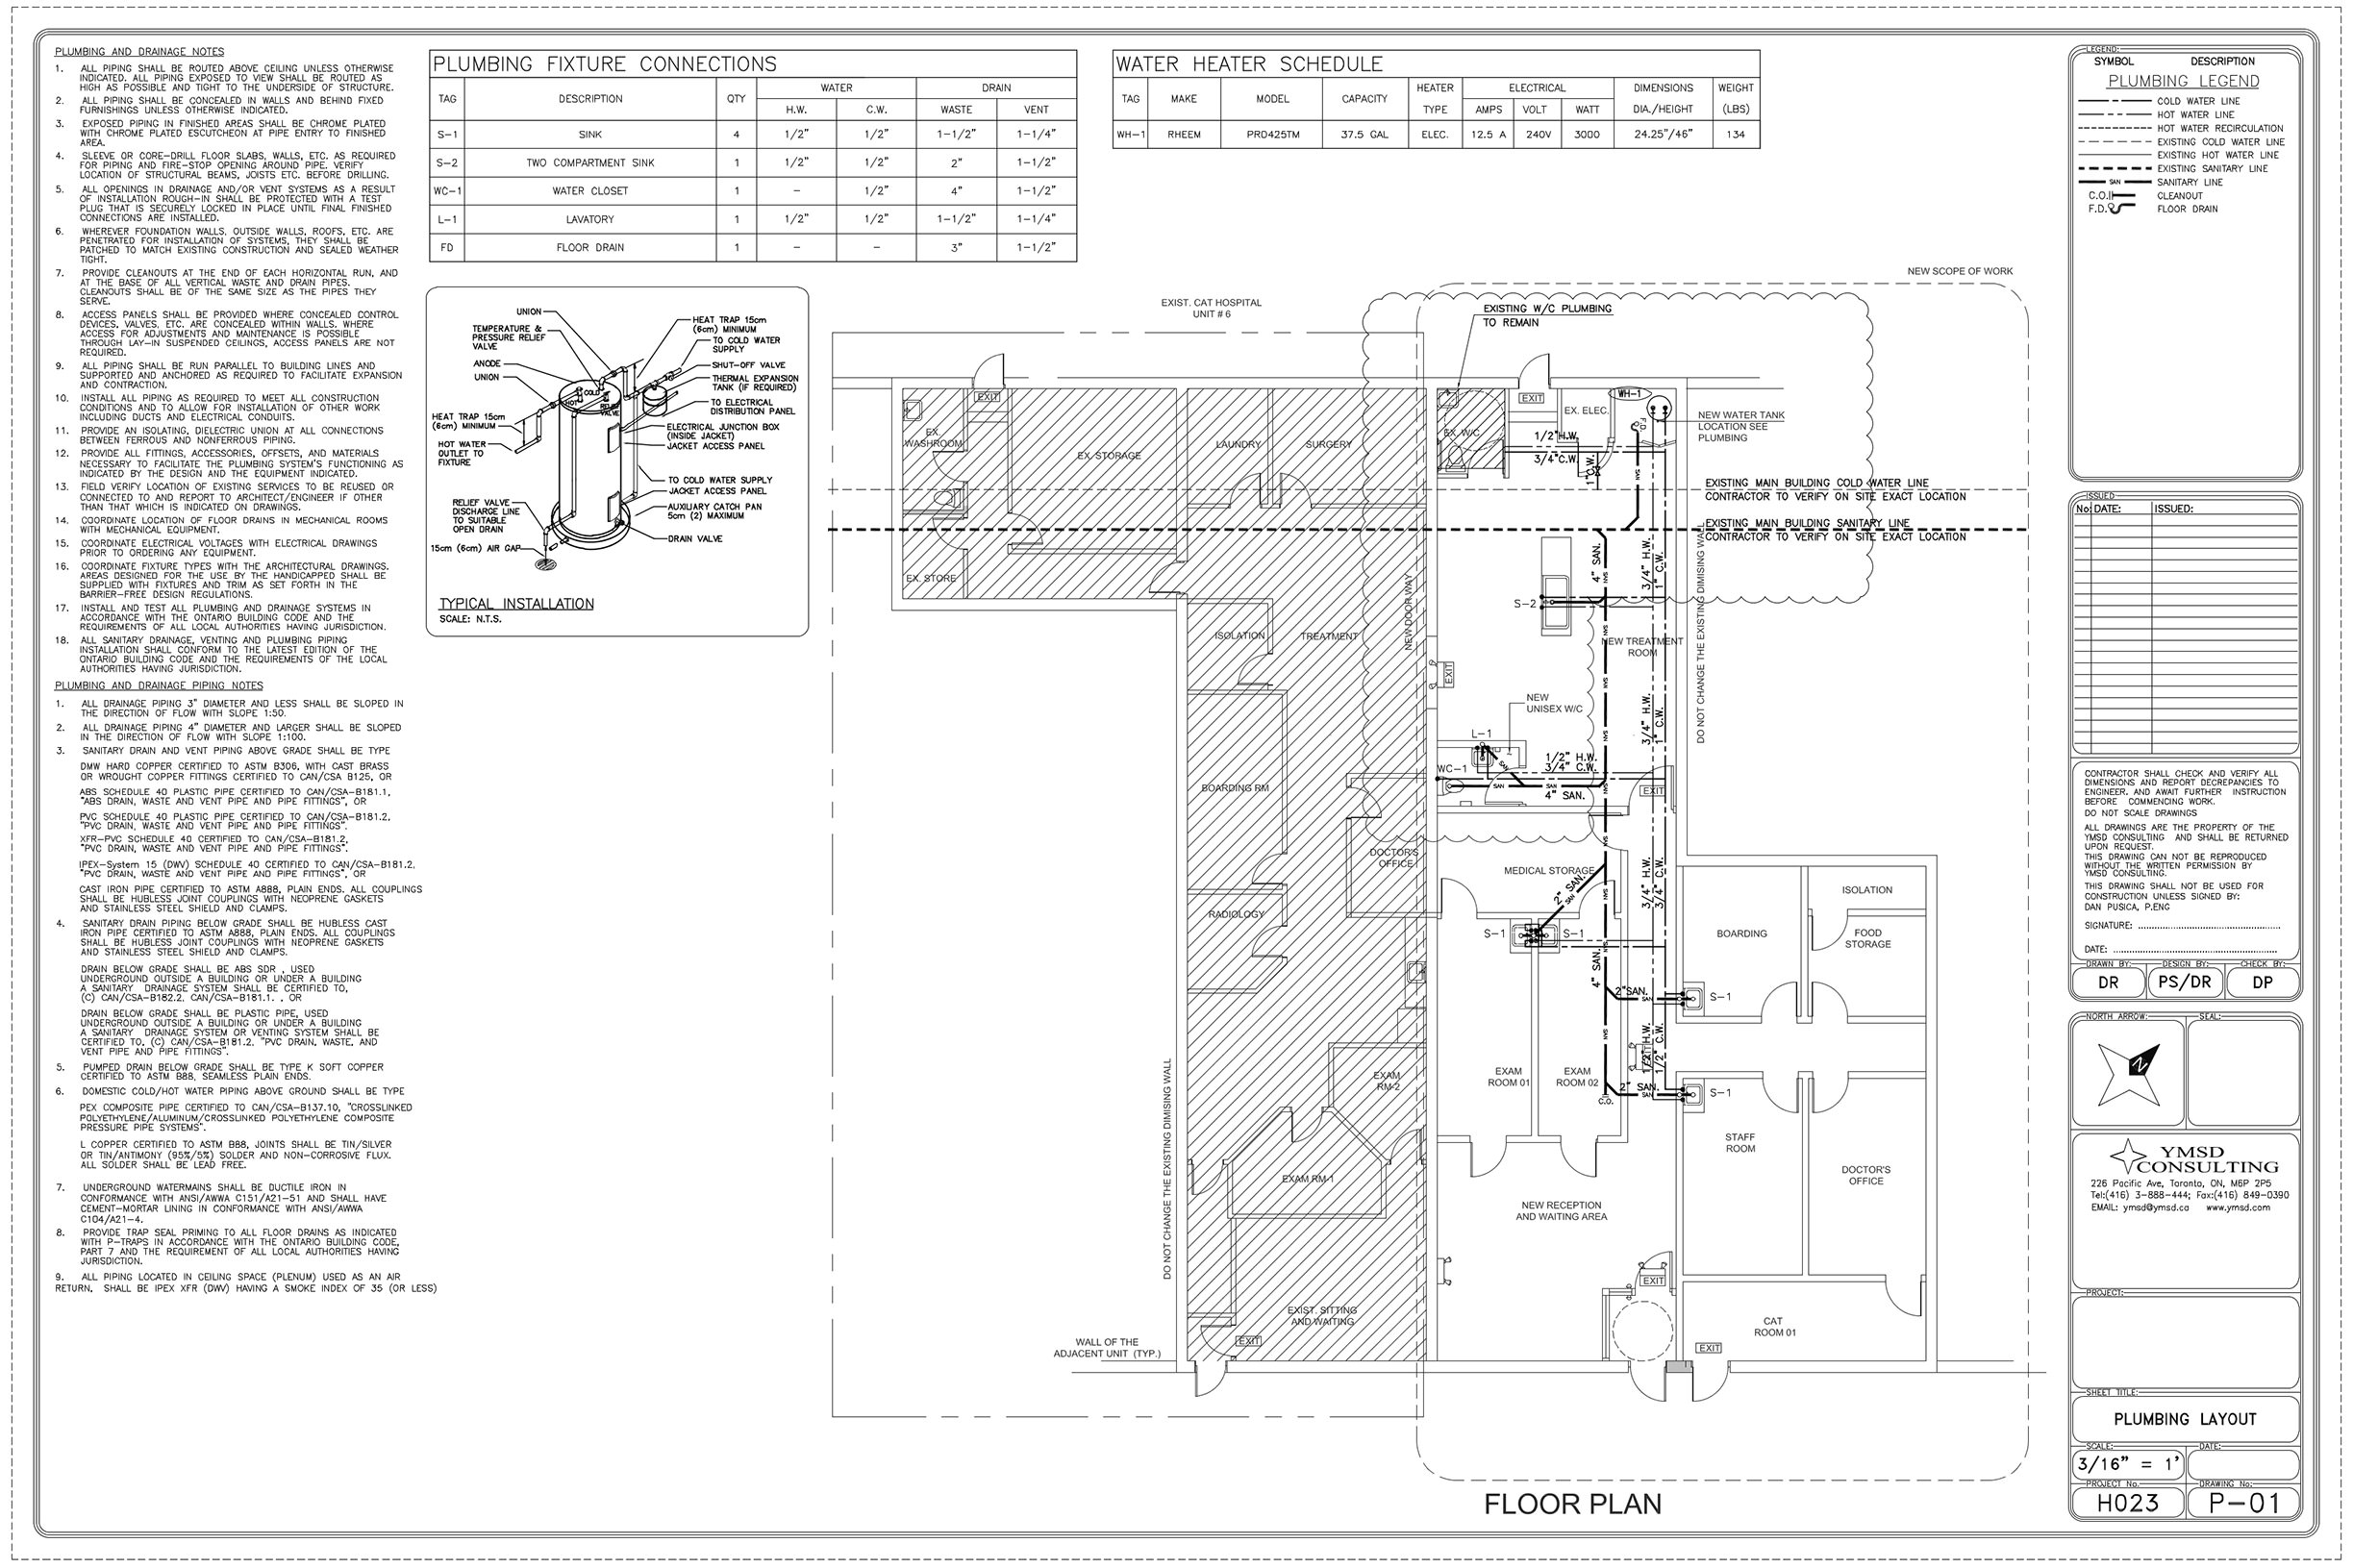 condensing unit schematic hvac design in toronto ymsd consulting design hvac  hvac design in toronto ymsd consulting design hvac